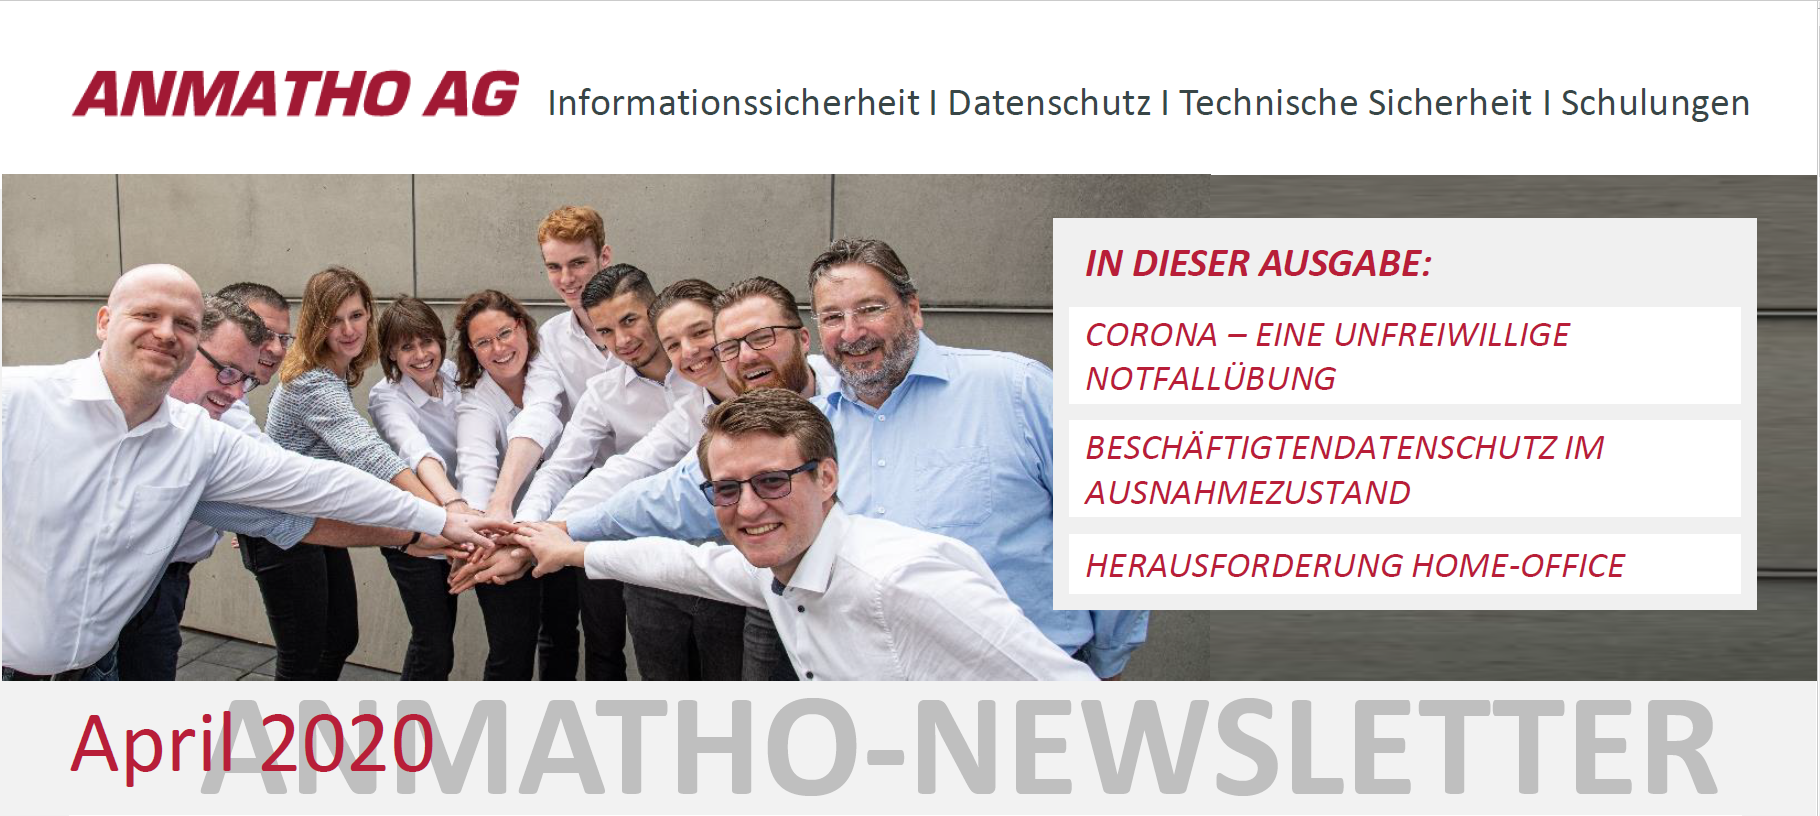 Newsletter Special ANMATHO Team